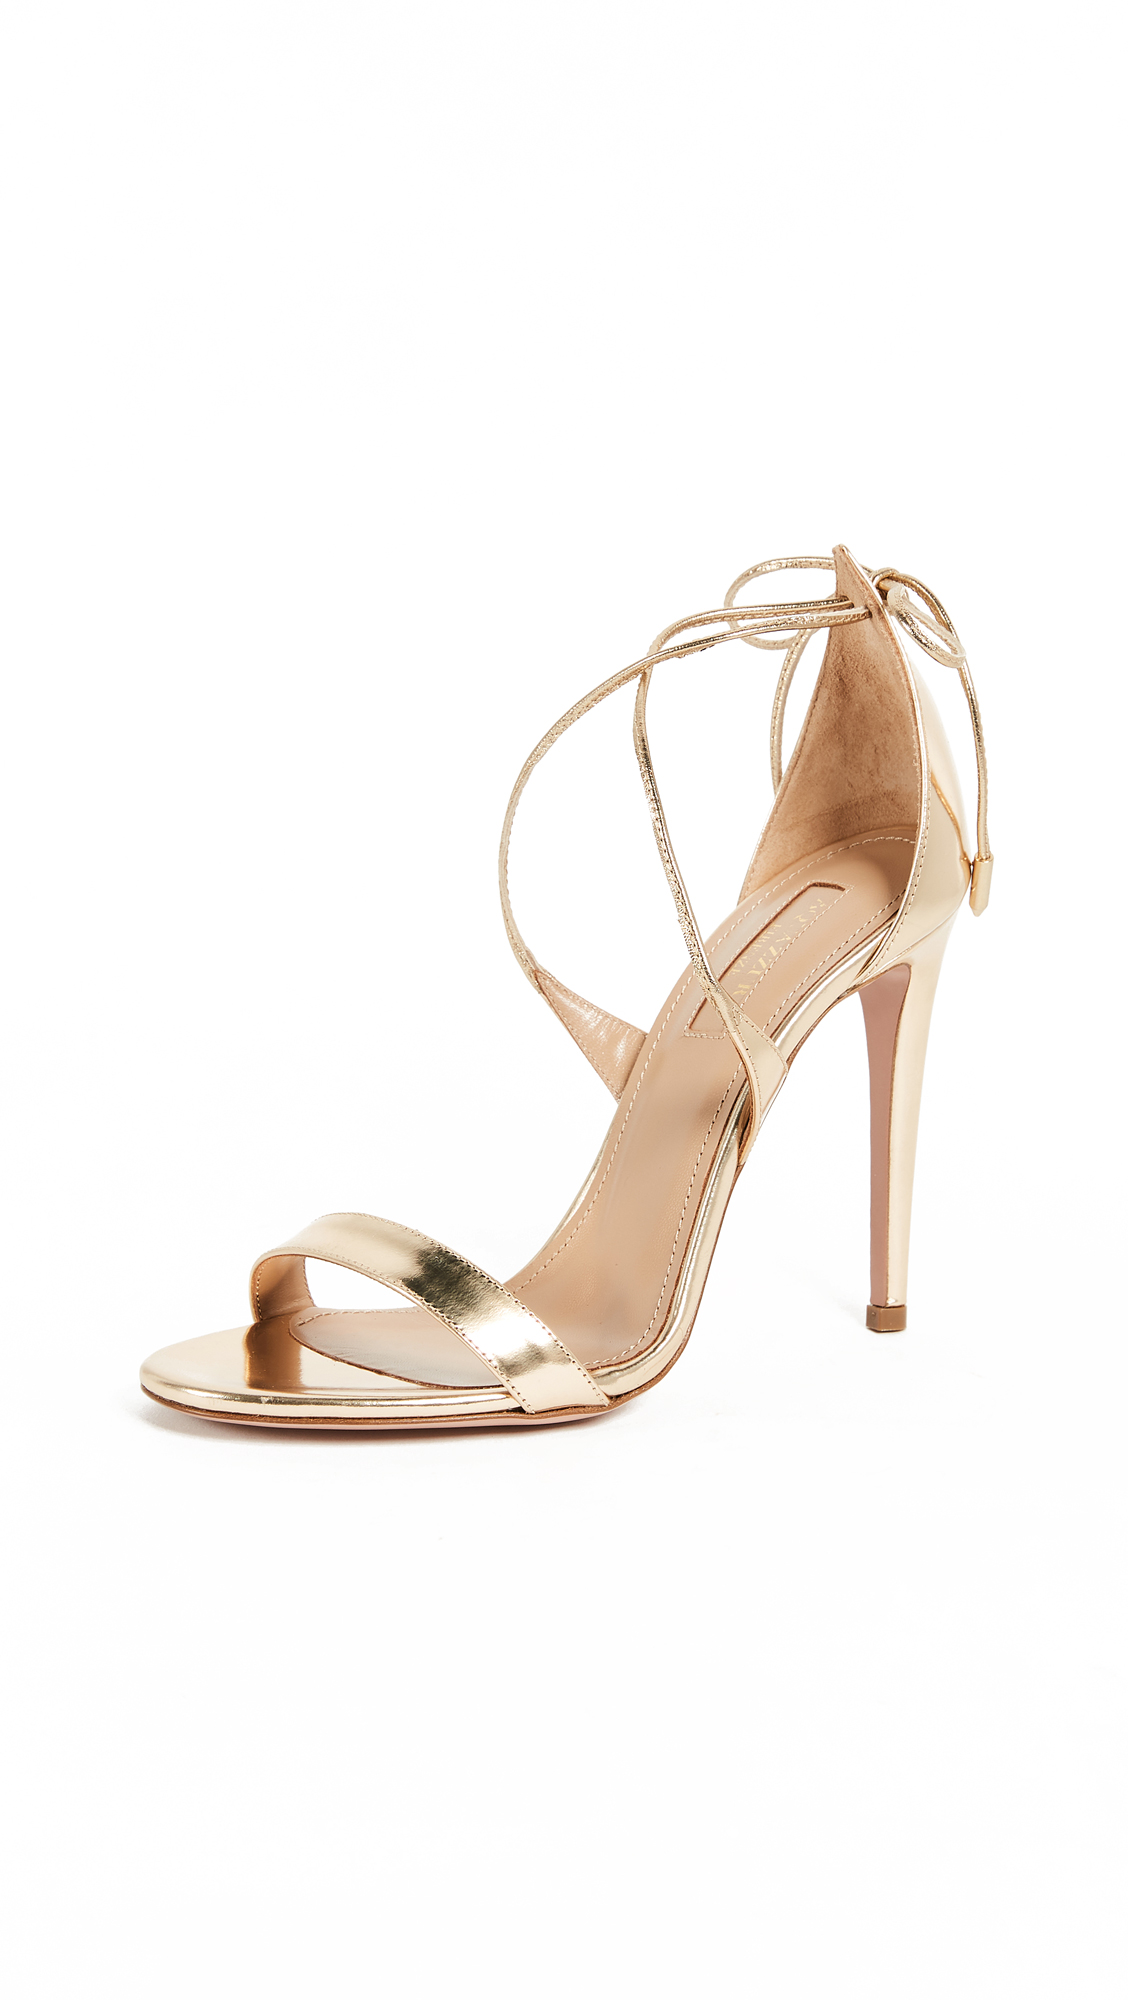 Aquazzura Linda 105 Sandals - Soft Gold